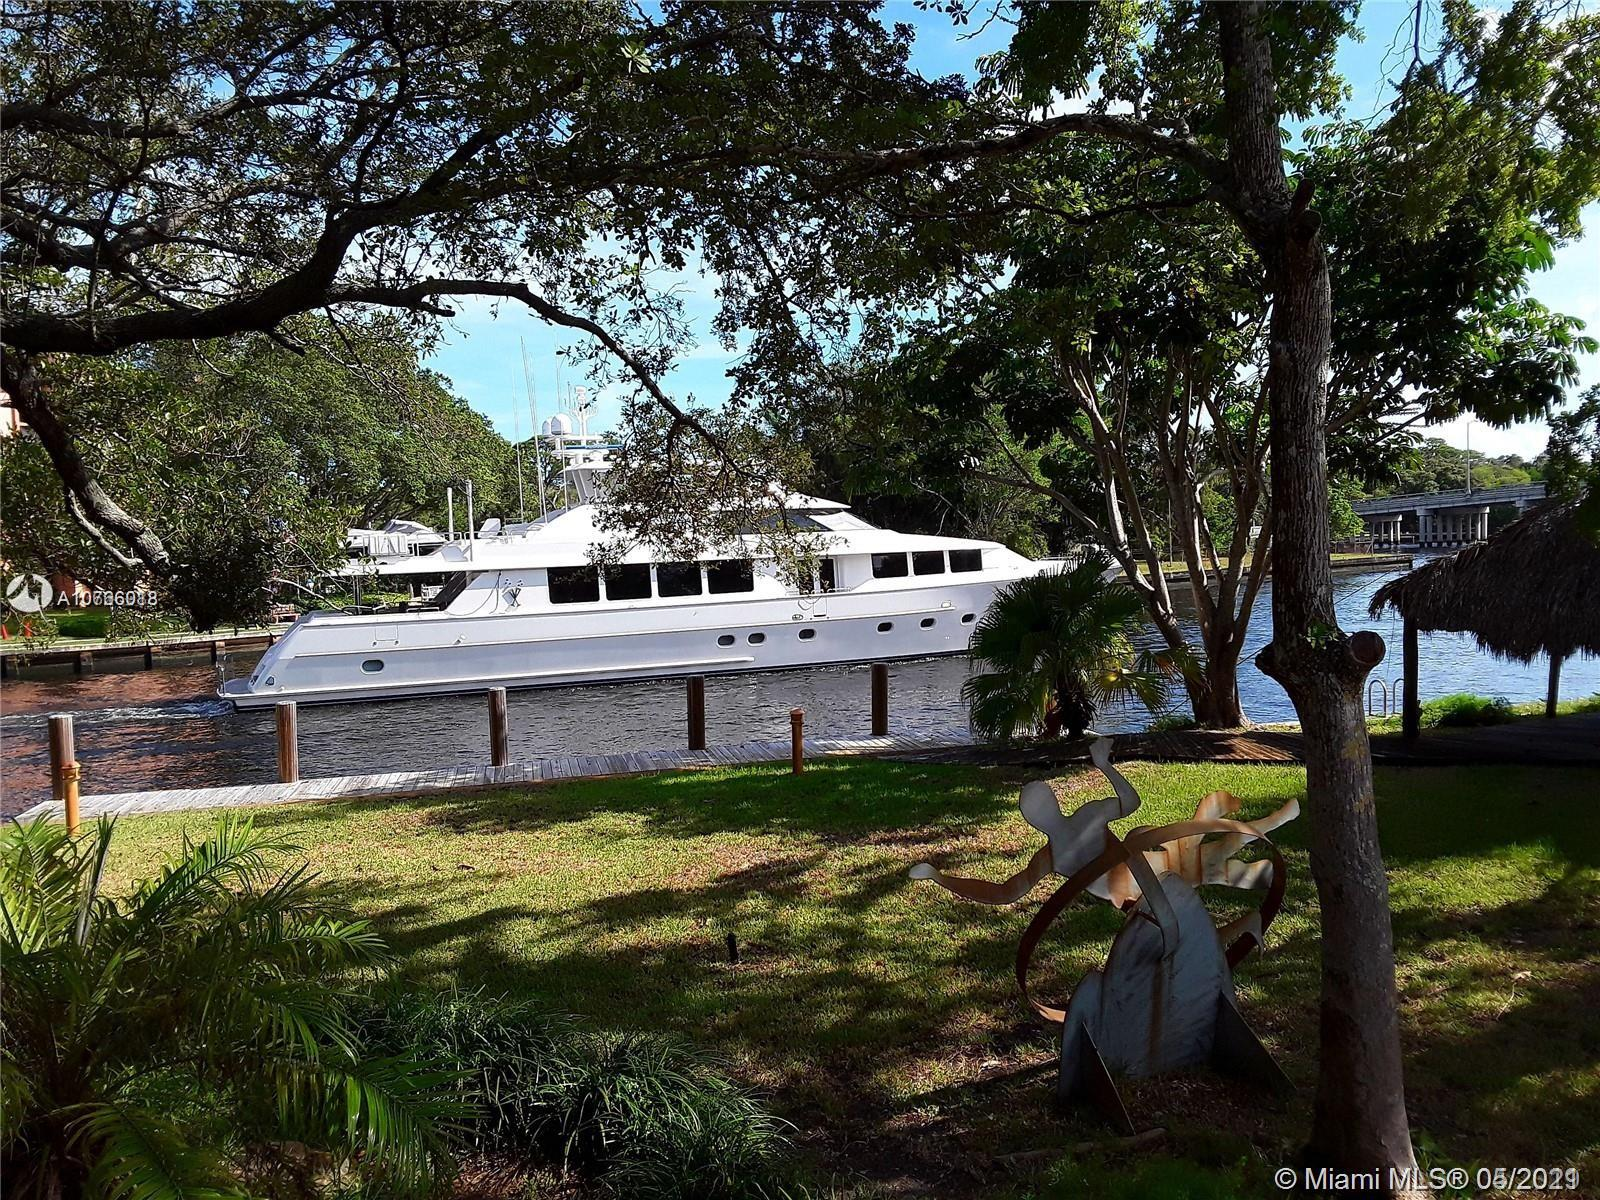 ( LOOKING FOR LAND AND PRIVACY? WE HAVE IT! ) HUGE 32,000 SQ FT LOT WITH A LARGE WELL MAINTAINED 